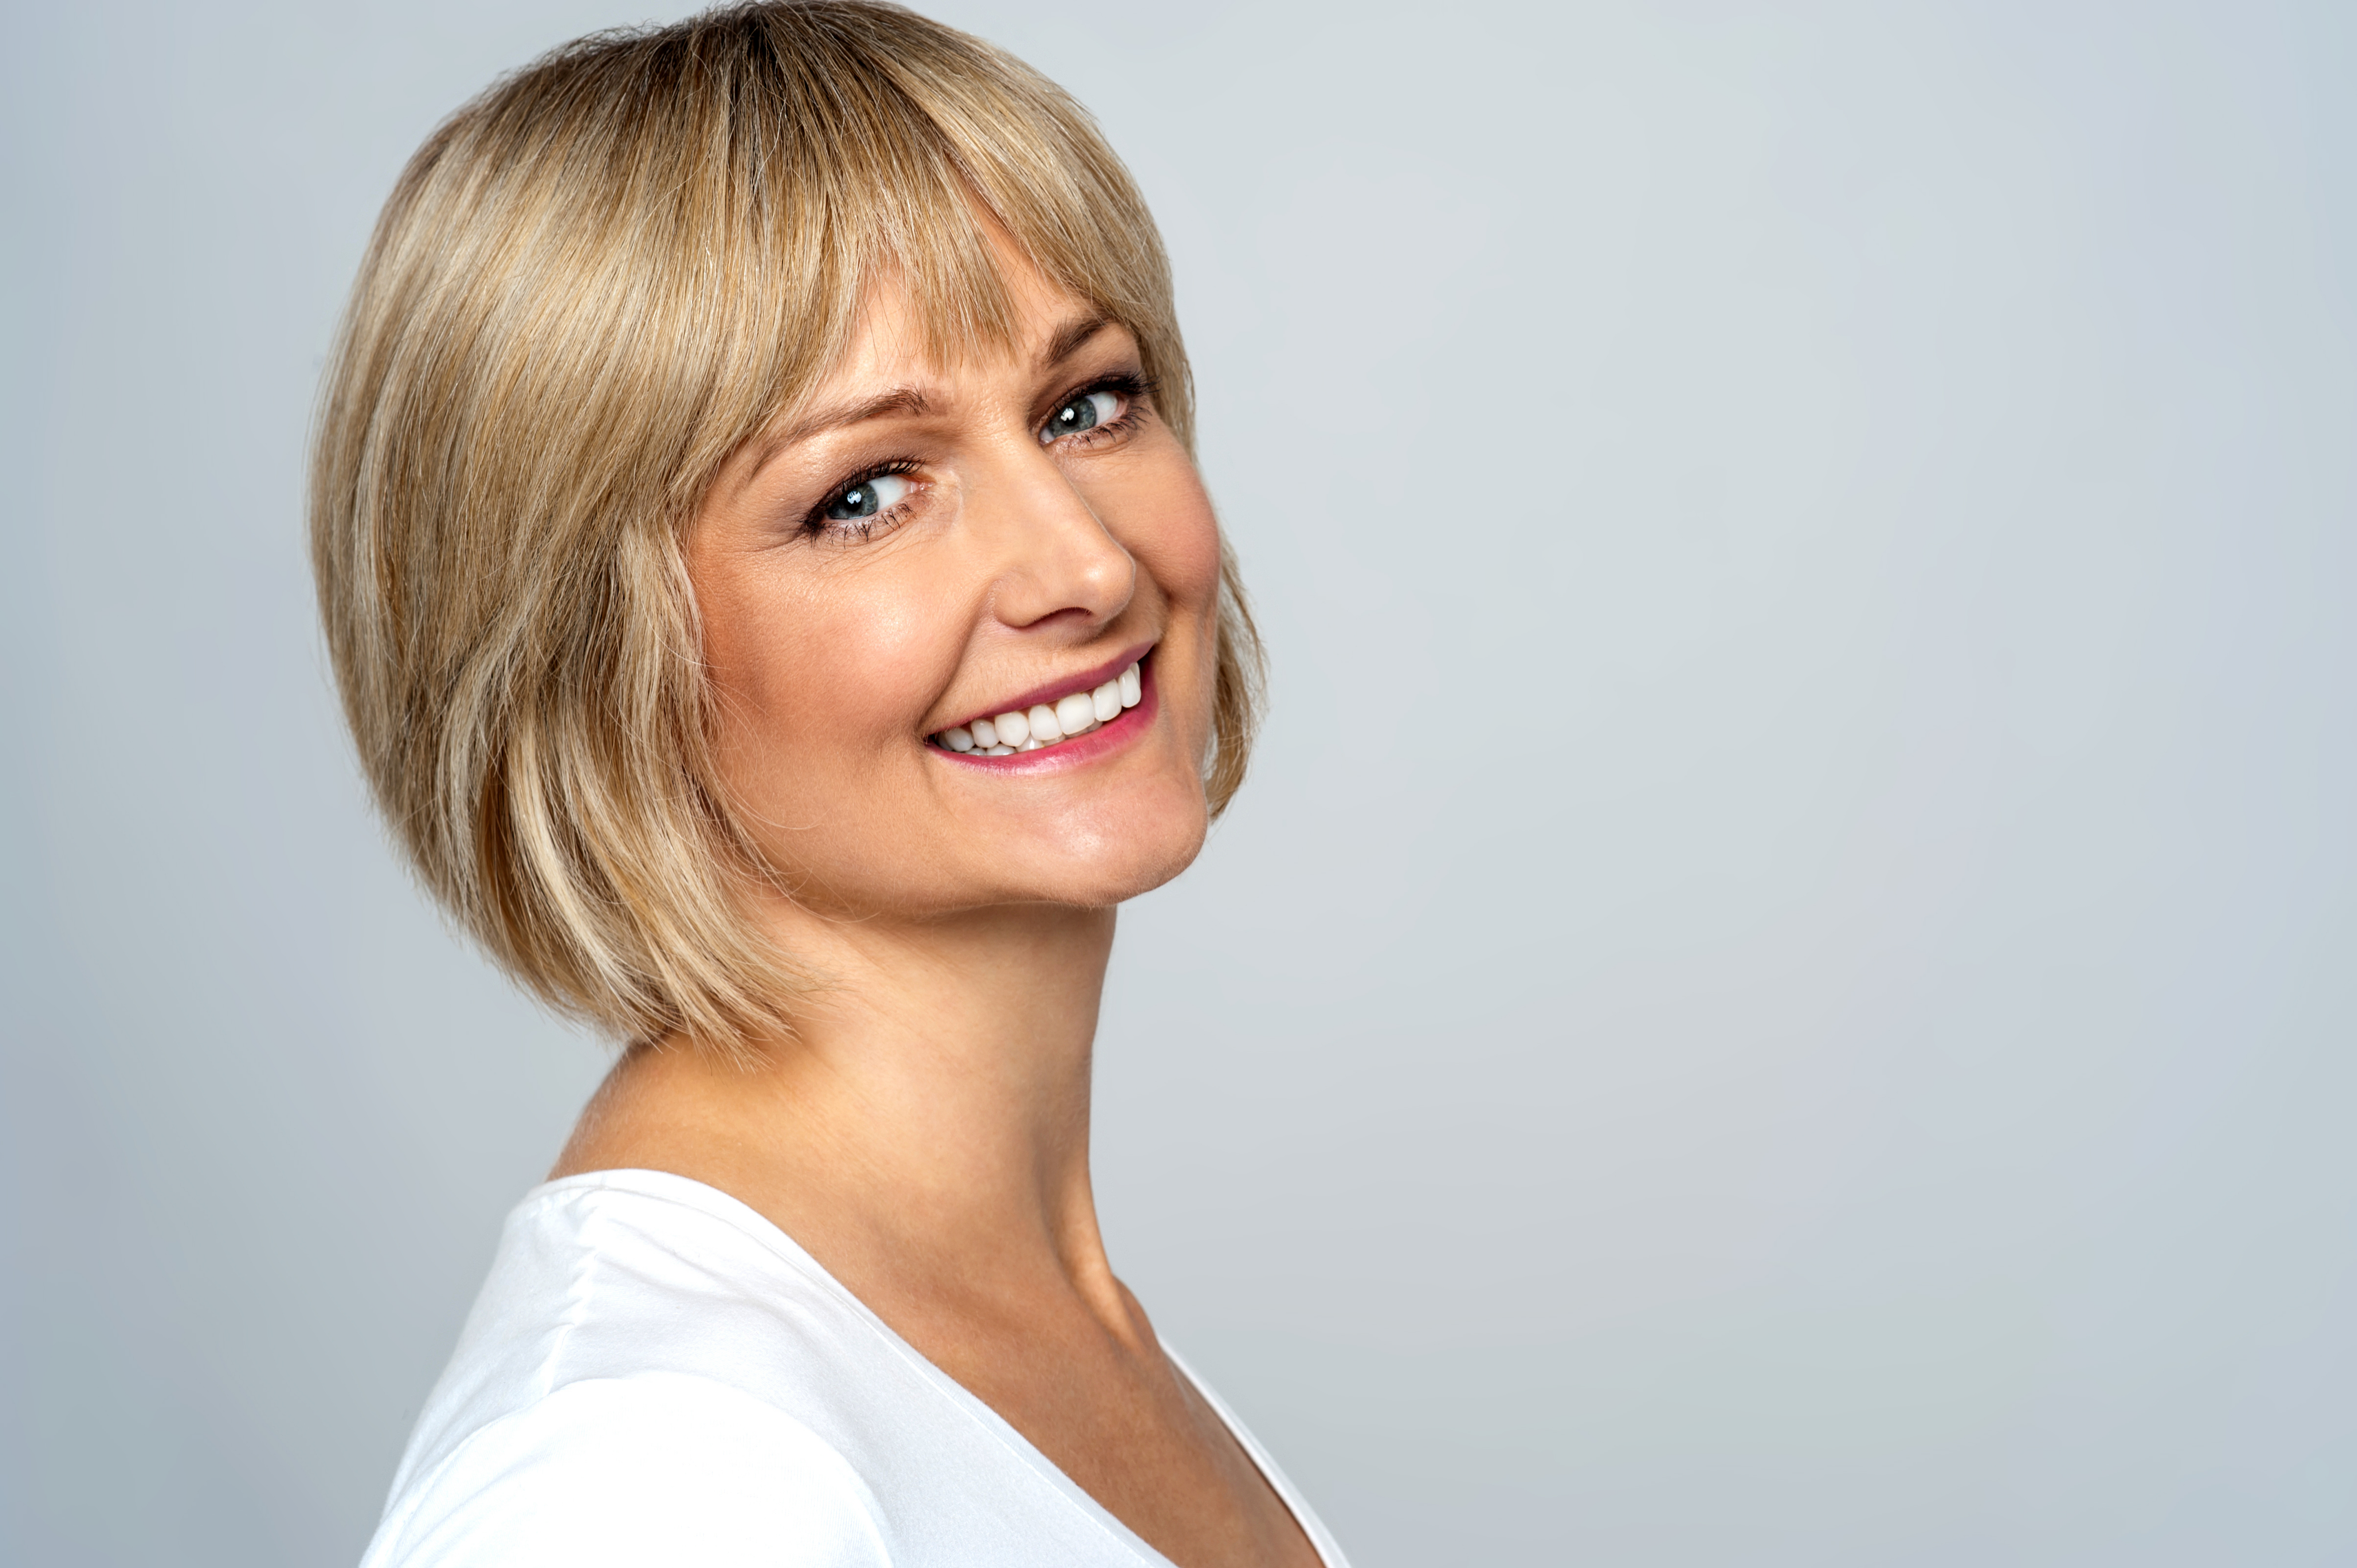 Vivace™ - Dr. Beverly Fischer, The Advanced Center for Plastic Surgery